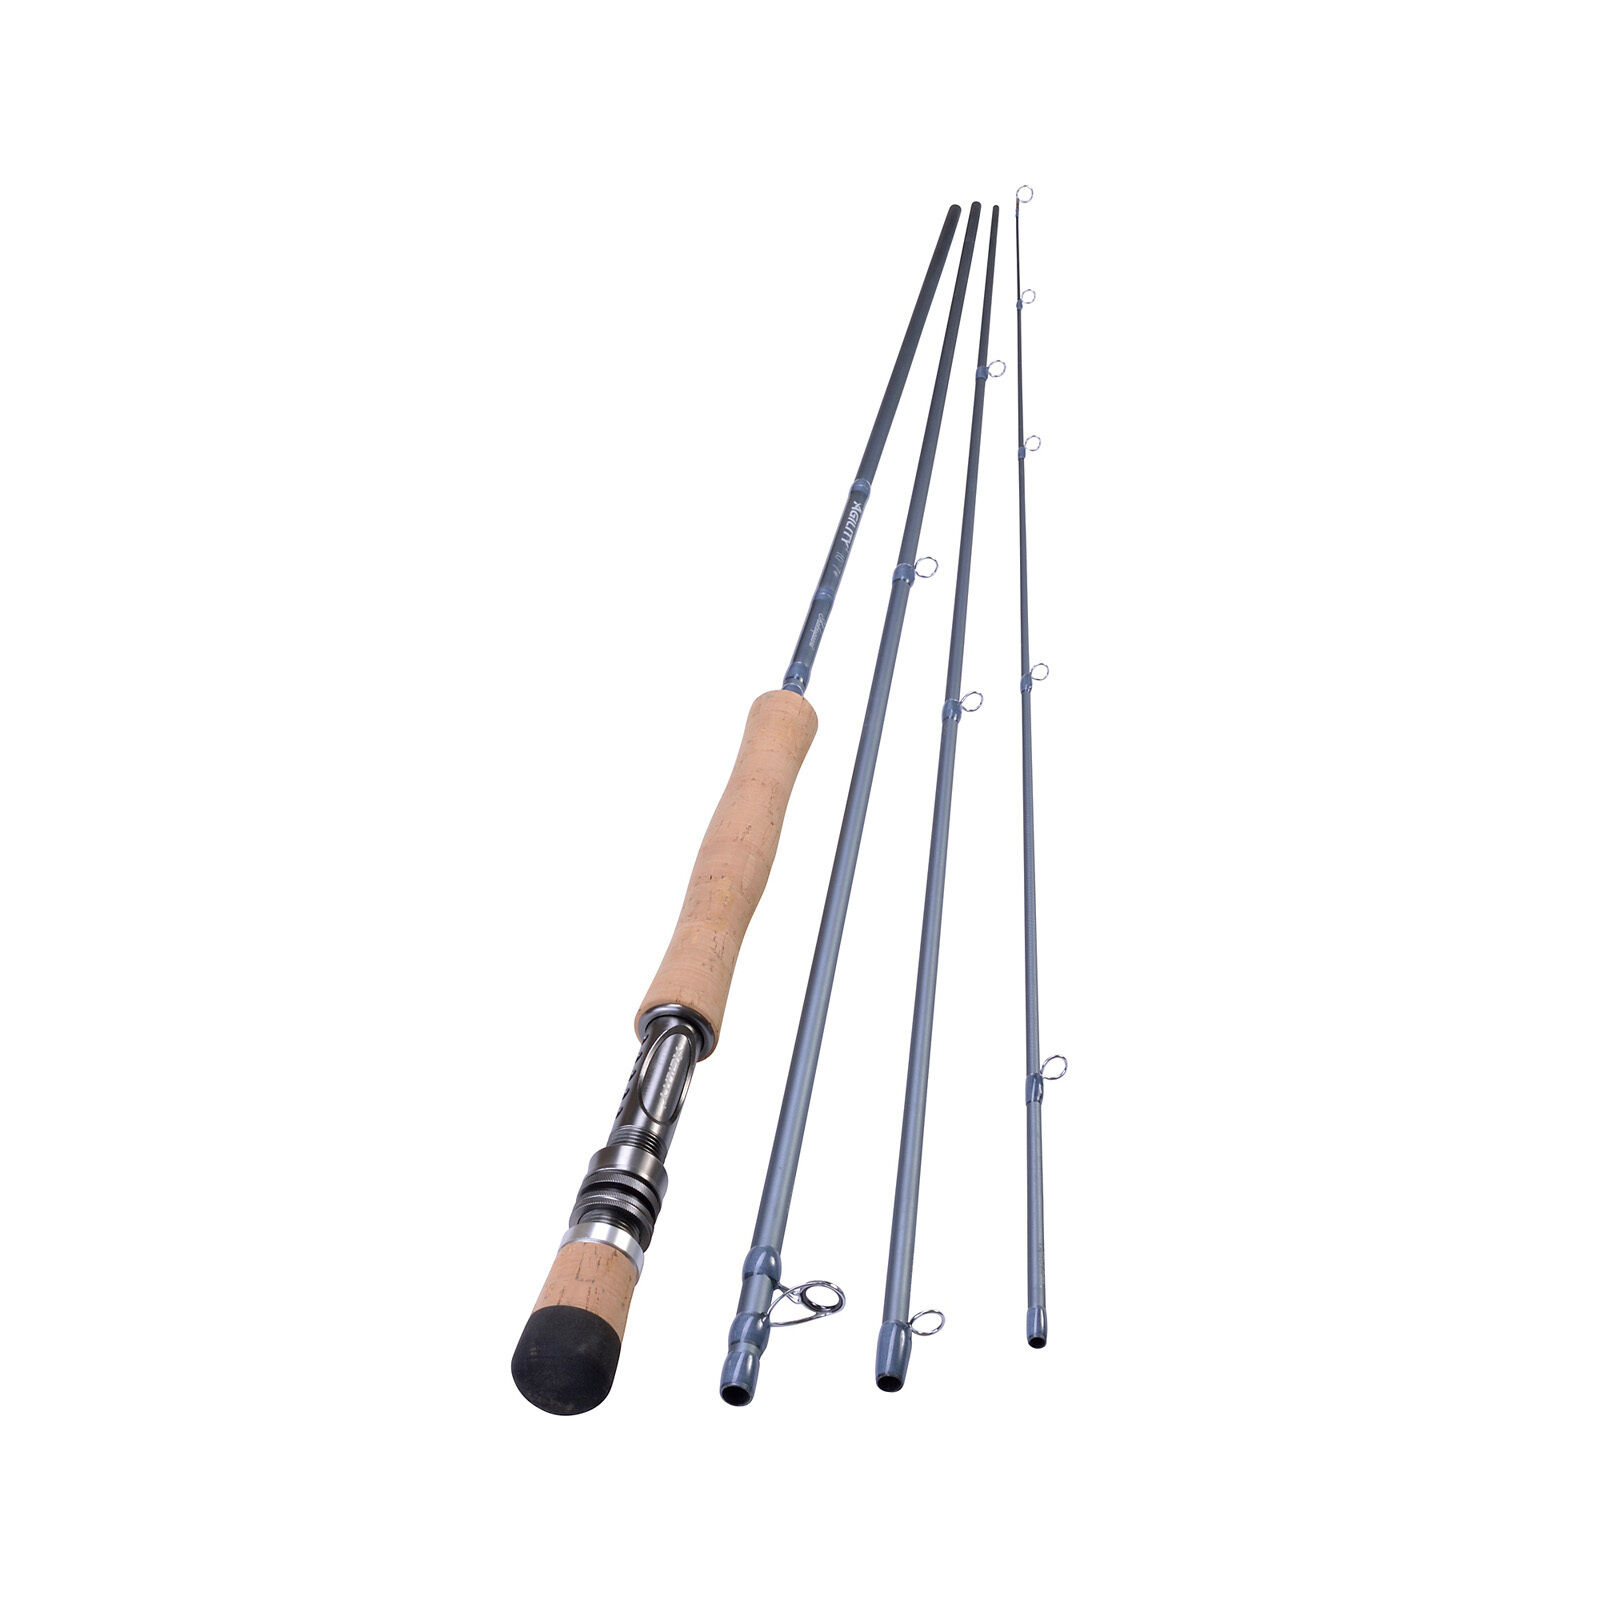 Shakespeare Agility 2 4 Piece  Fly Fishing Rods 8ft 6' - 11ft - All Models  free shipping on all orders